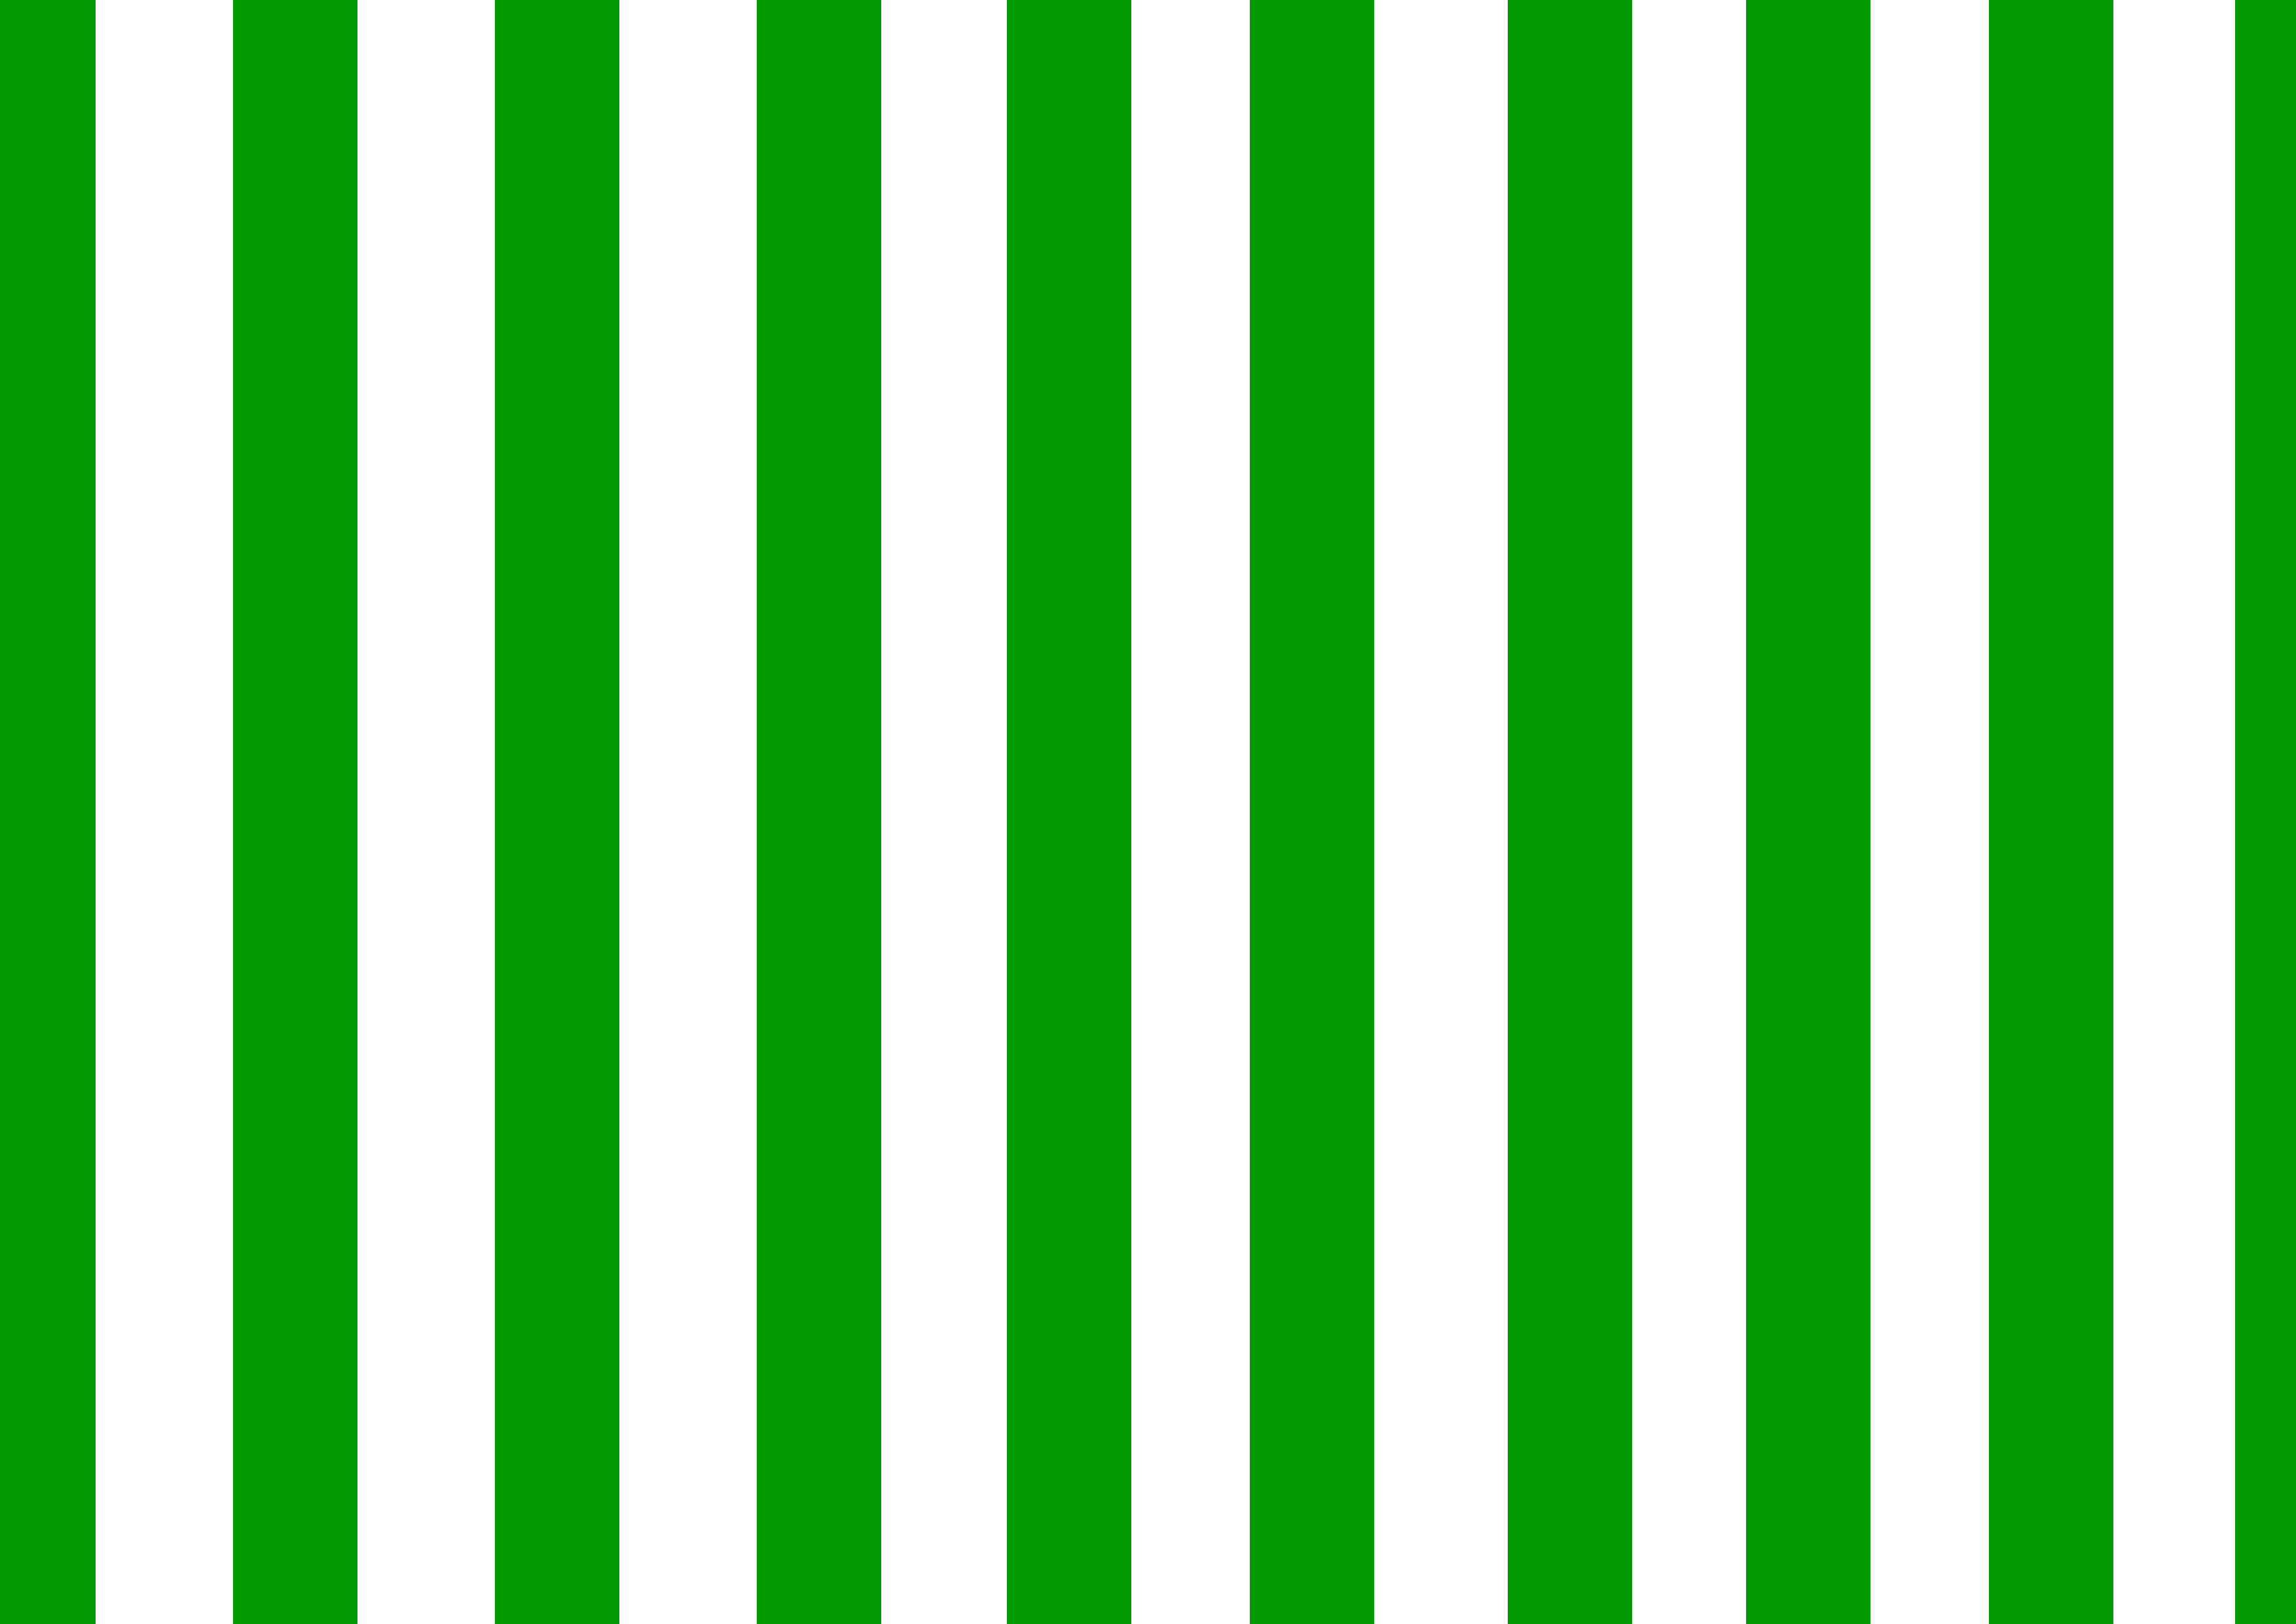 green and white striped a4jpg 3507x2481